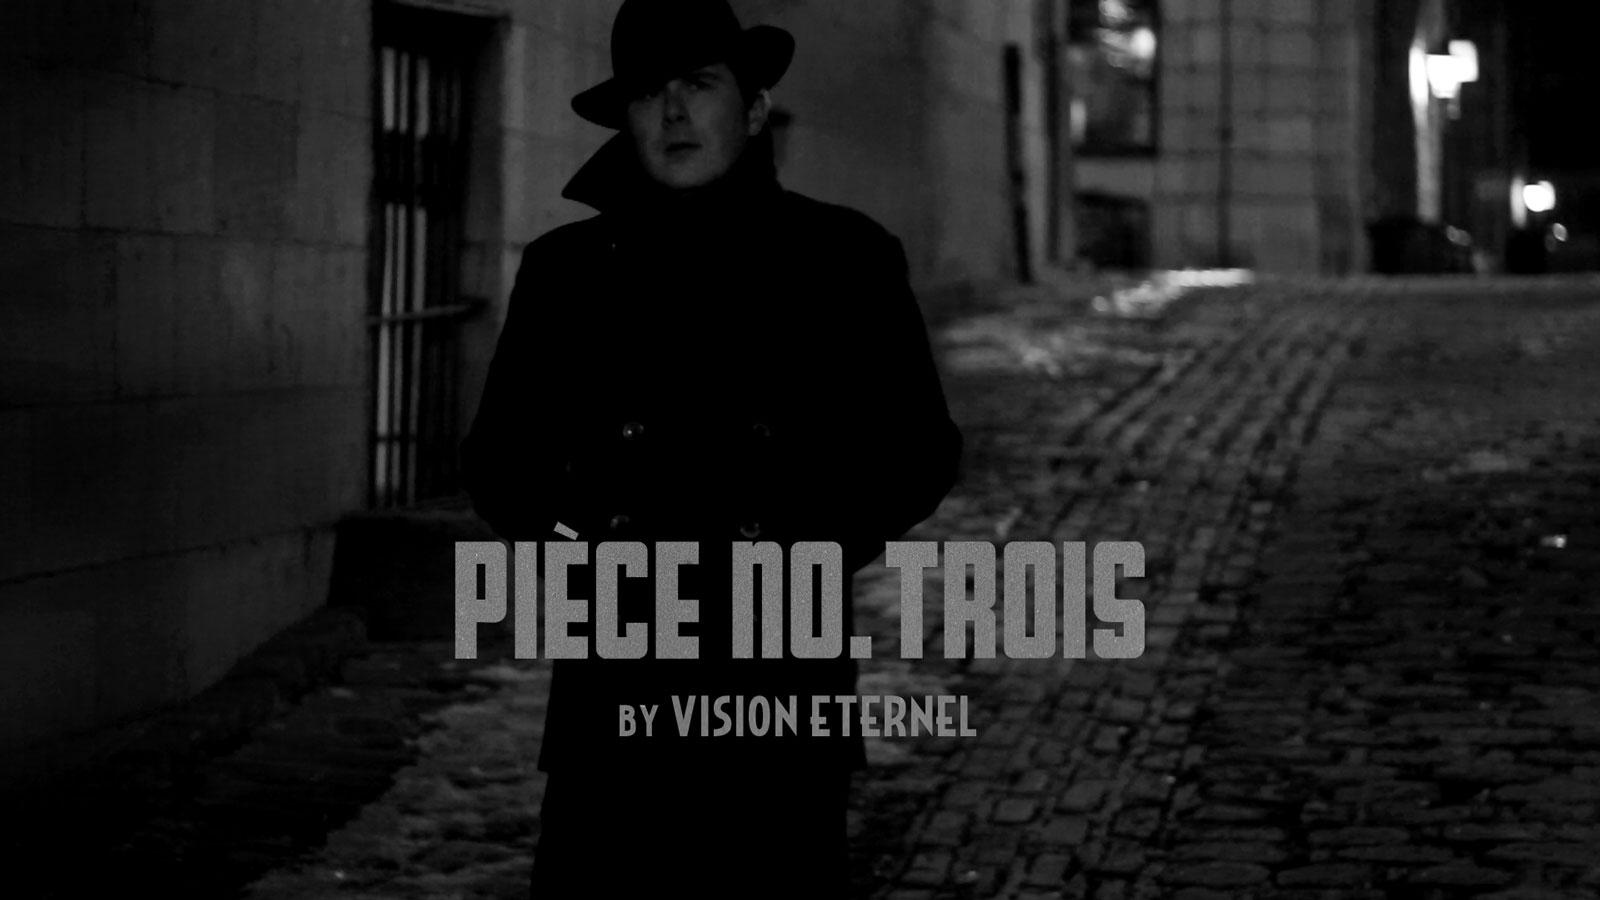 Vision Éternel Pièce No. Trois Video Is Released